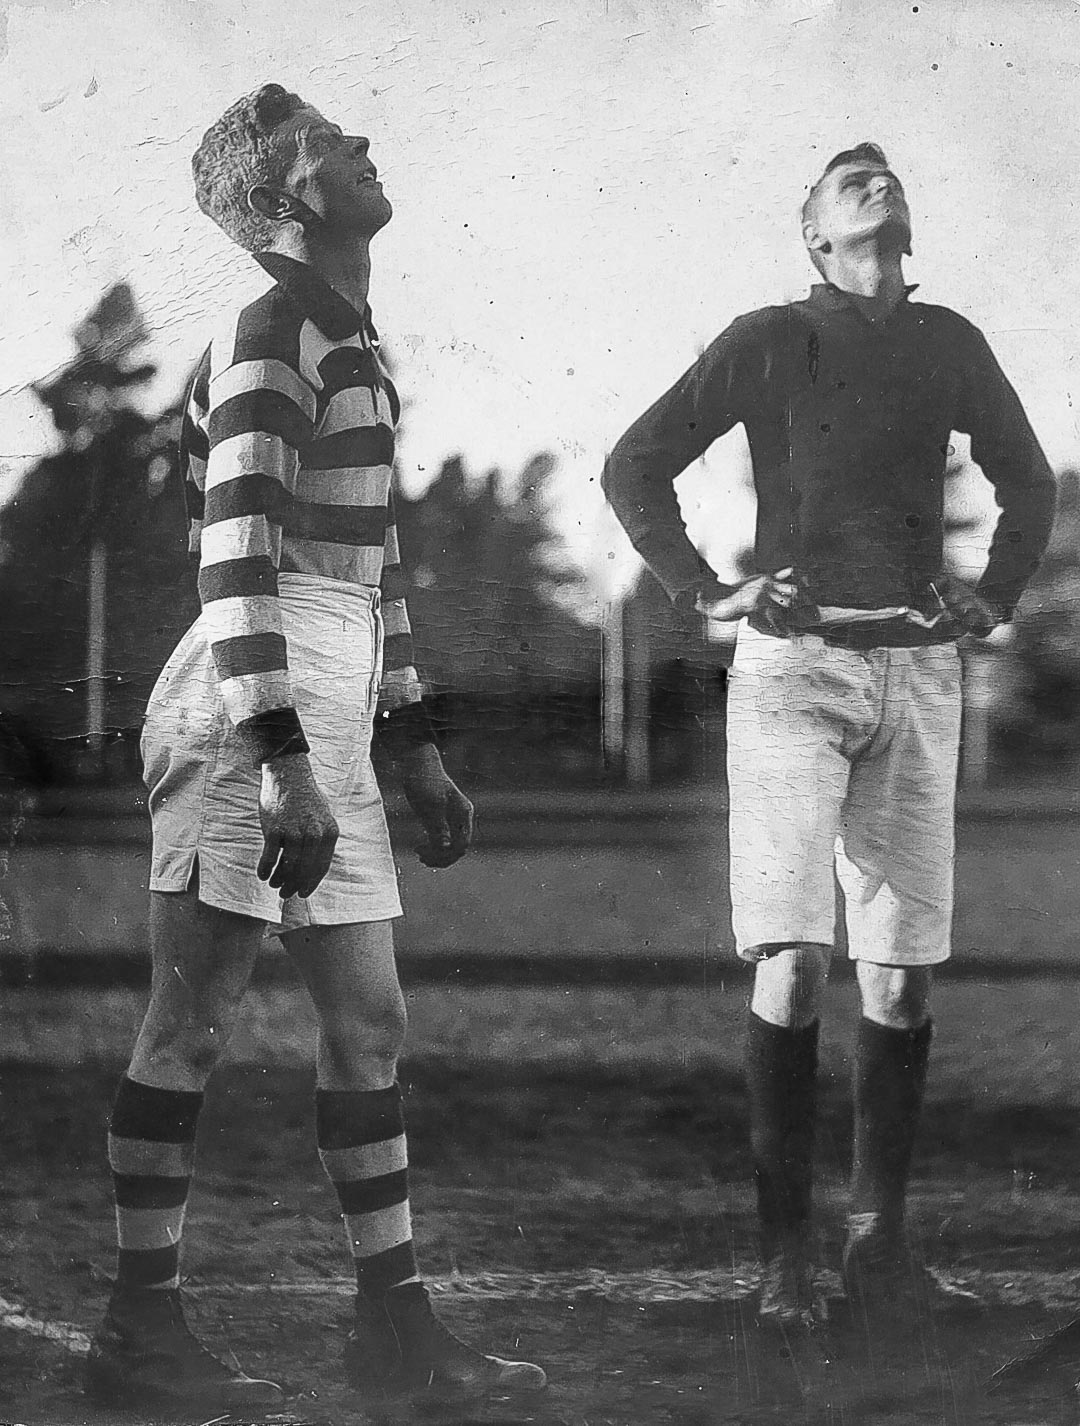 Arthurs Creek Football Club.  Captains tossing the coin at Kardinia Park, Geelong, V.F.A. 1924.  Cyril Cations on left